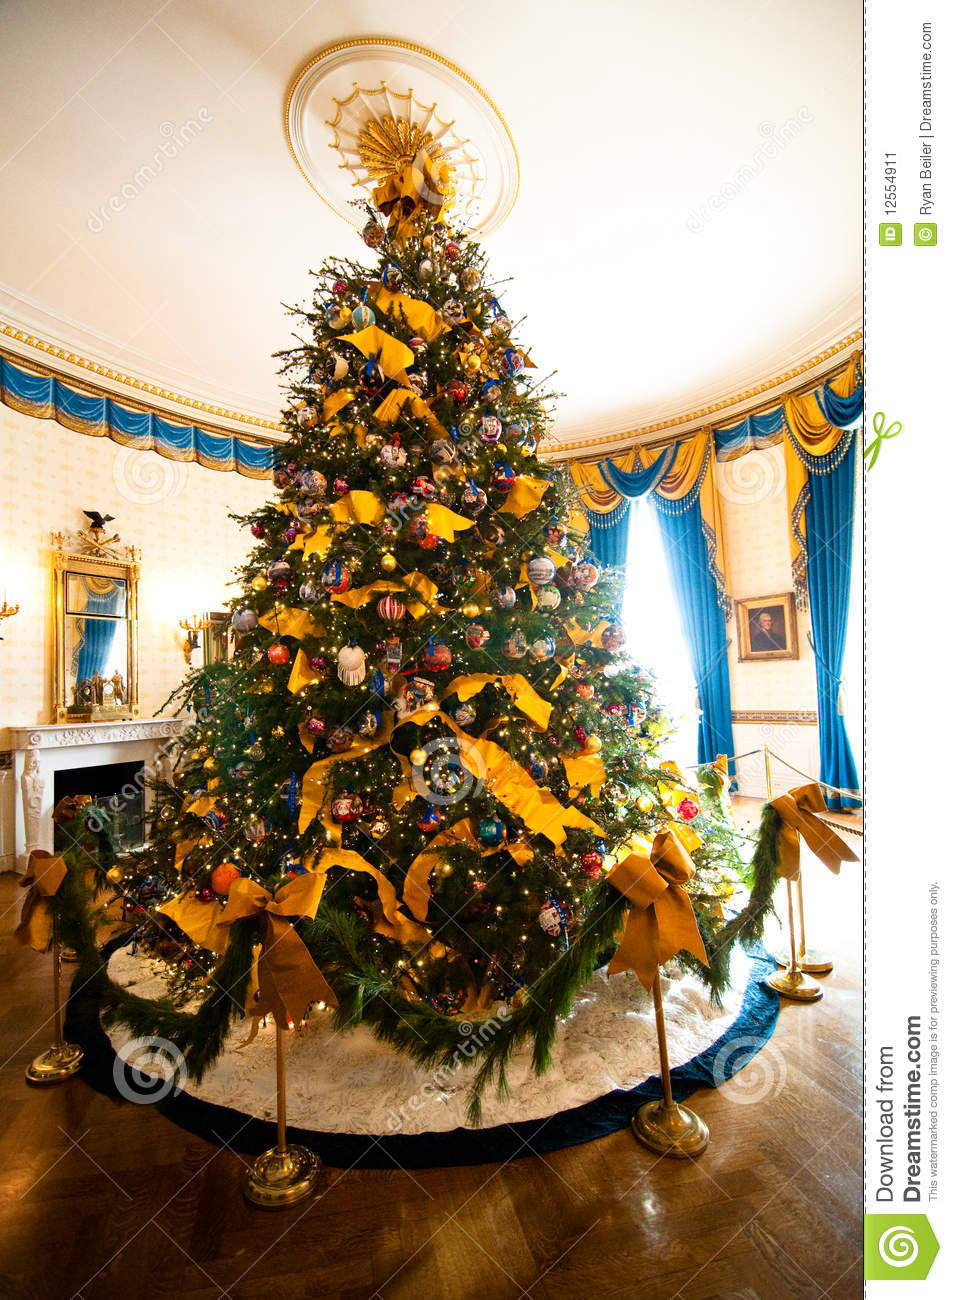 White House Christmas Tree Stock Image Image Of Gold